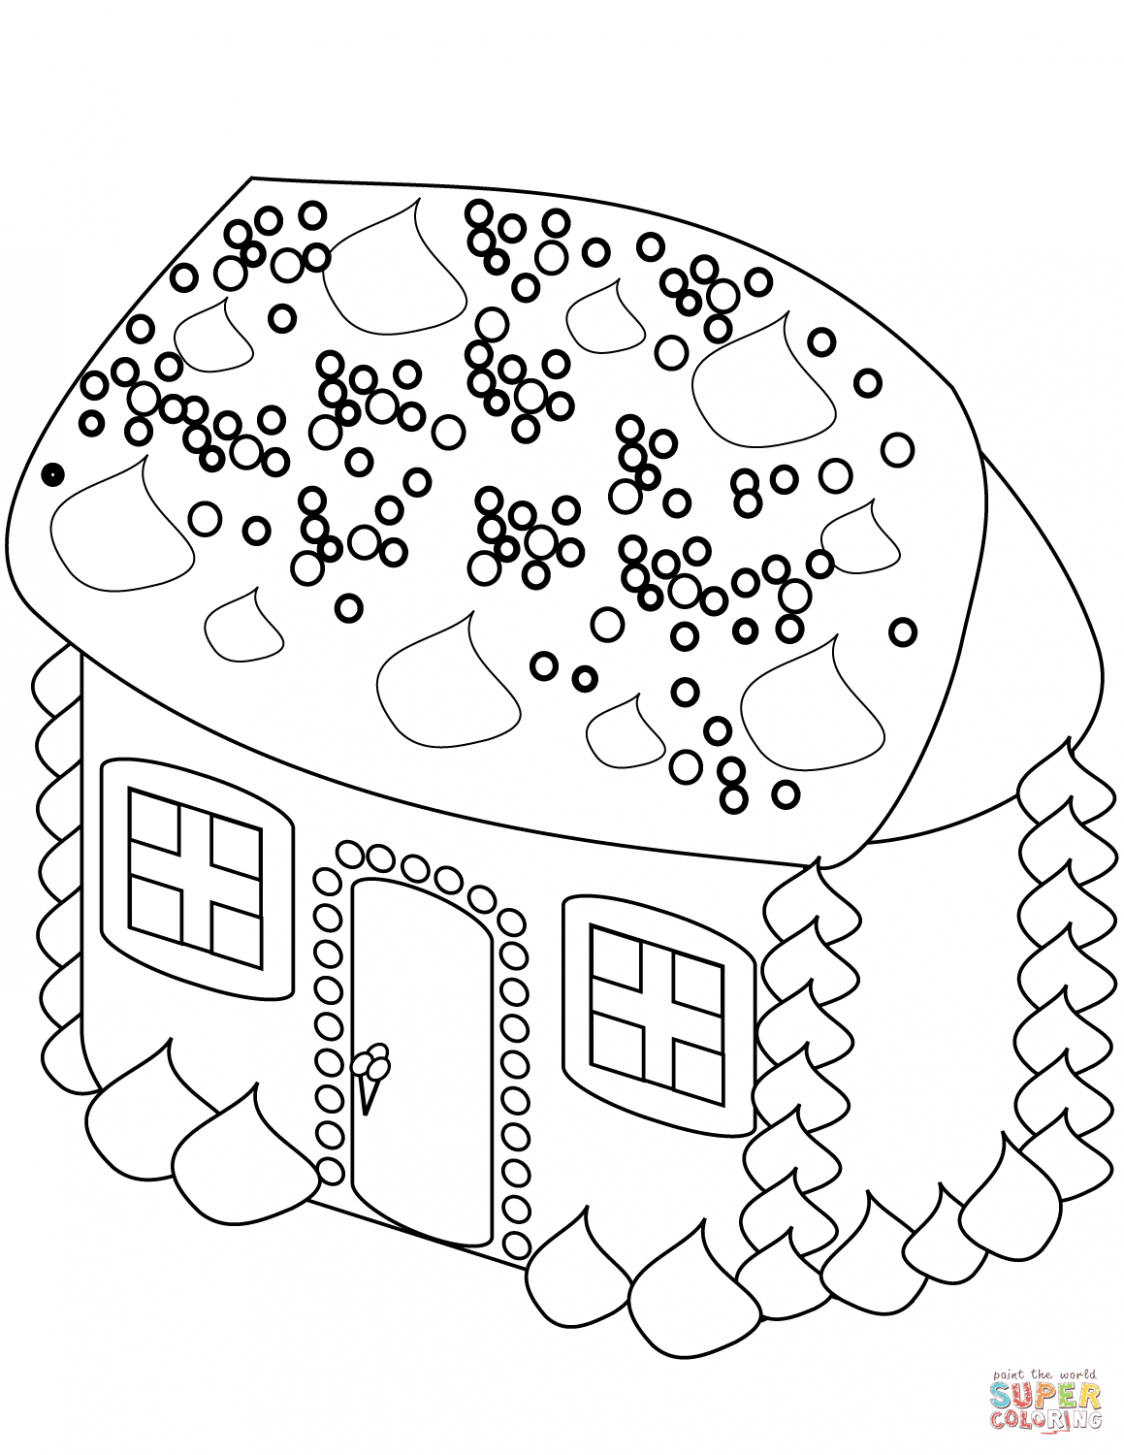 Gingerbread House coloring page | Free Printable Coloring Pages